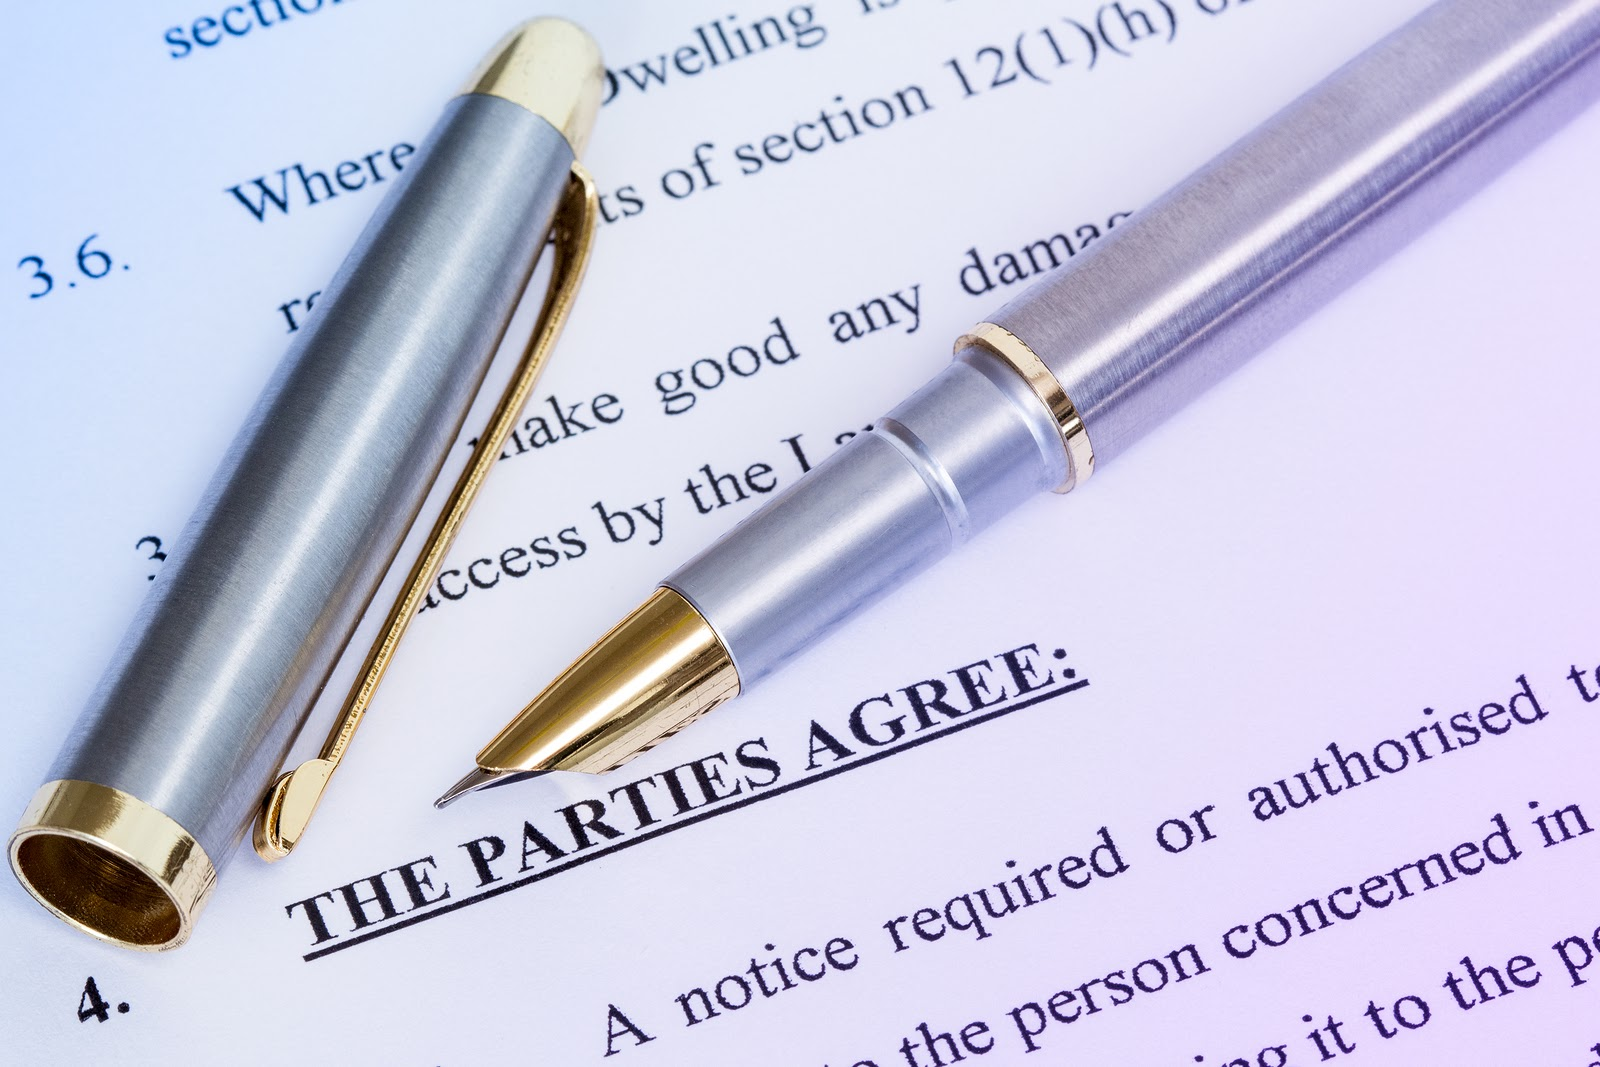 what is the timeline to file for breach of contract in maryland?